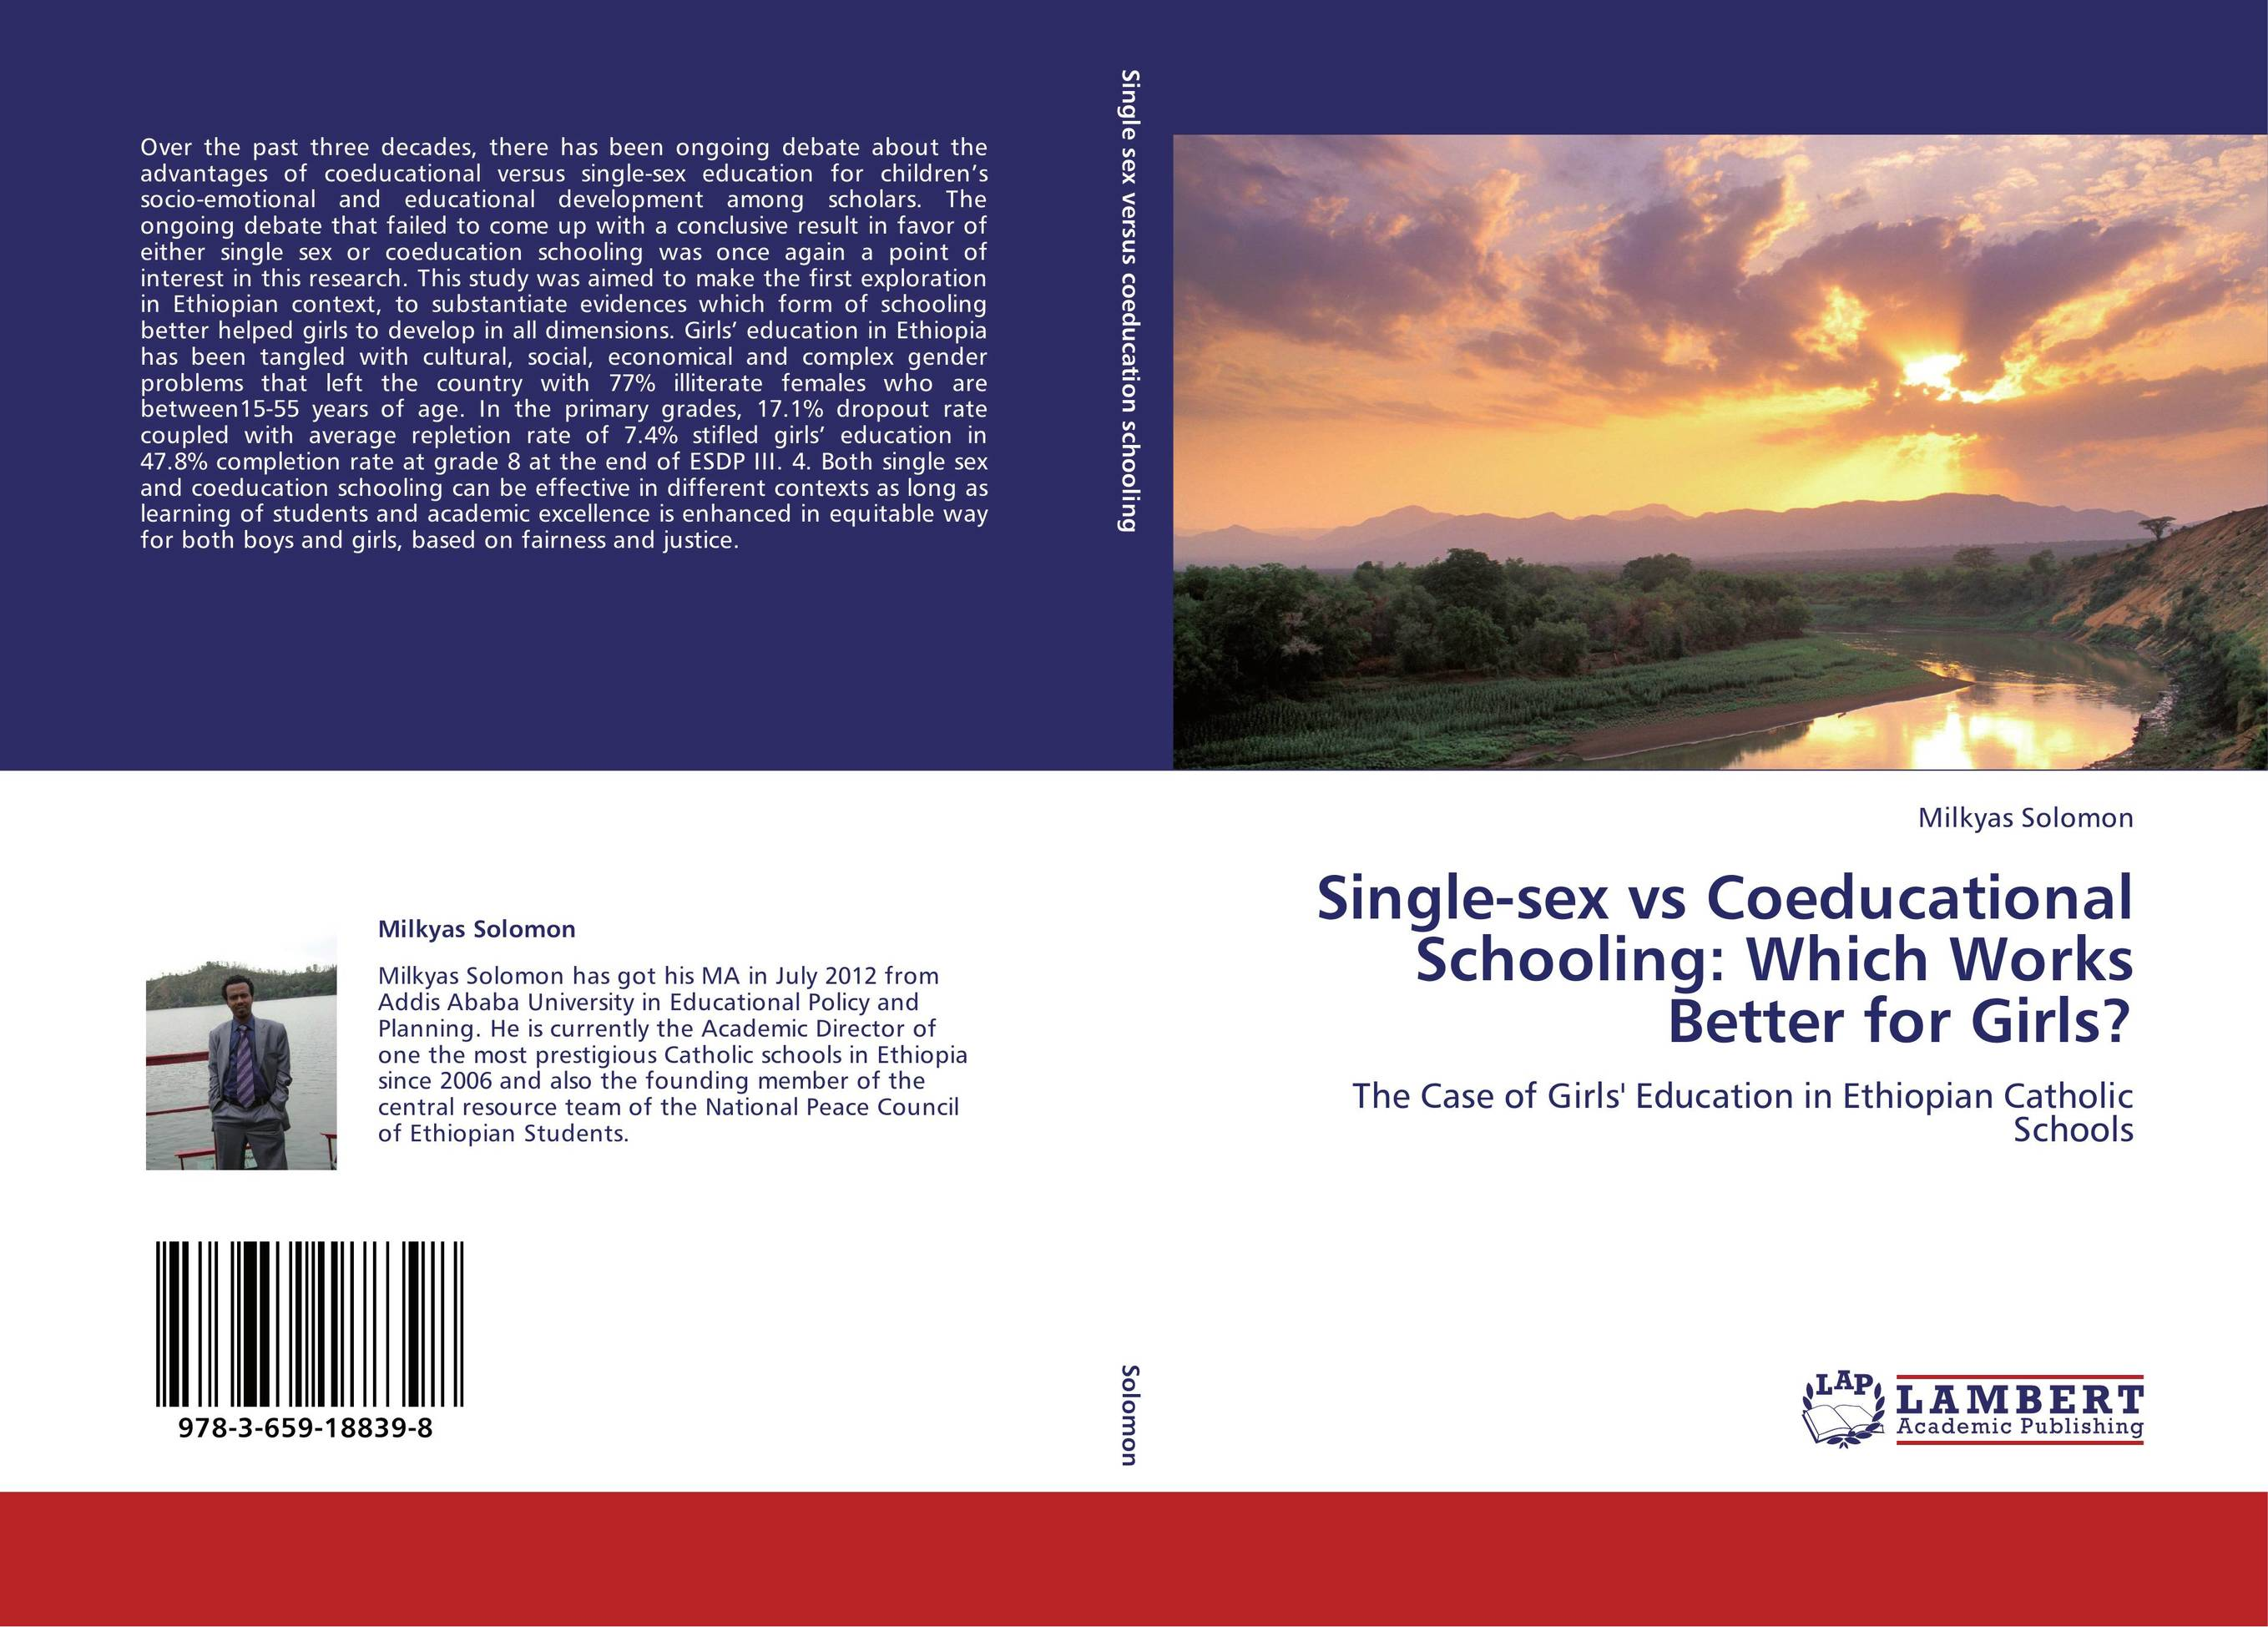 single sex education vs coeducation essay The author acknowledges that though there are differences between single-sex and coeducational high schools, this doesn't mean that one method is superior to the other and doesn't draw unilateral conclusions but tries to find which conditions can from single-sex schools can be transfer to coeducational schools.